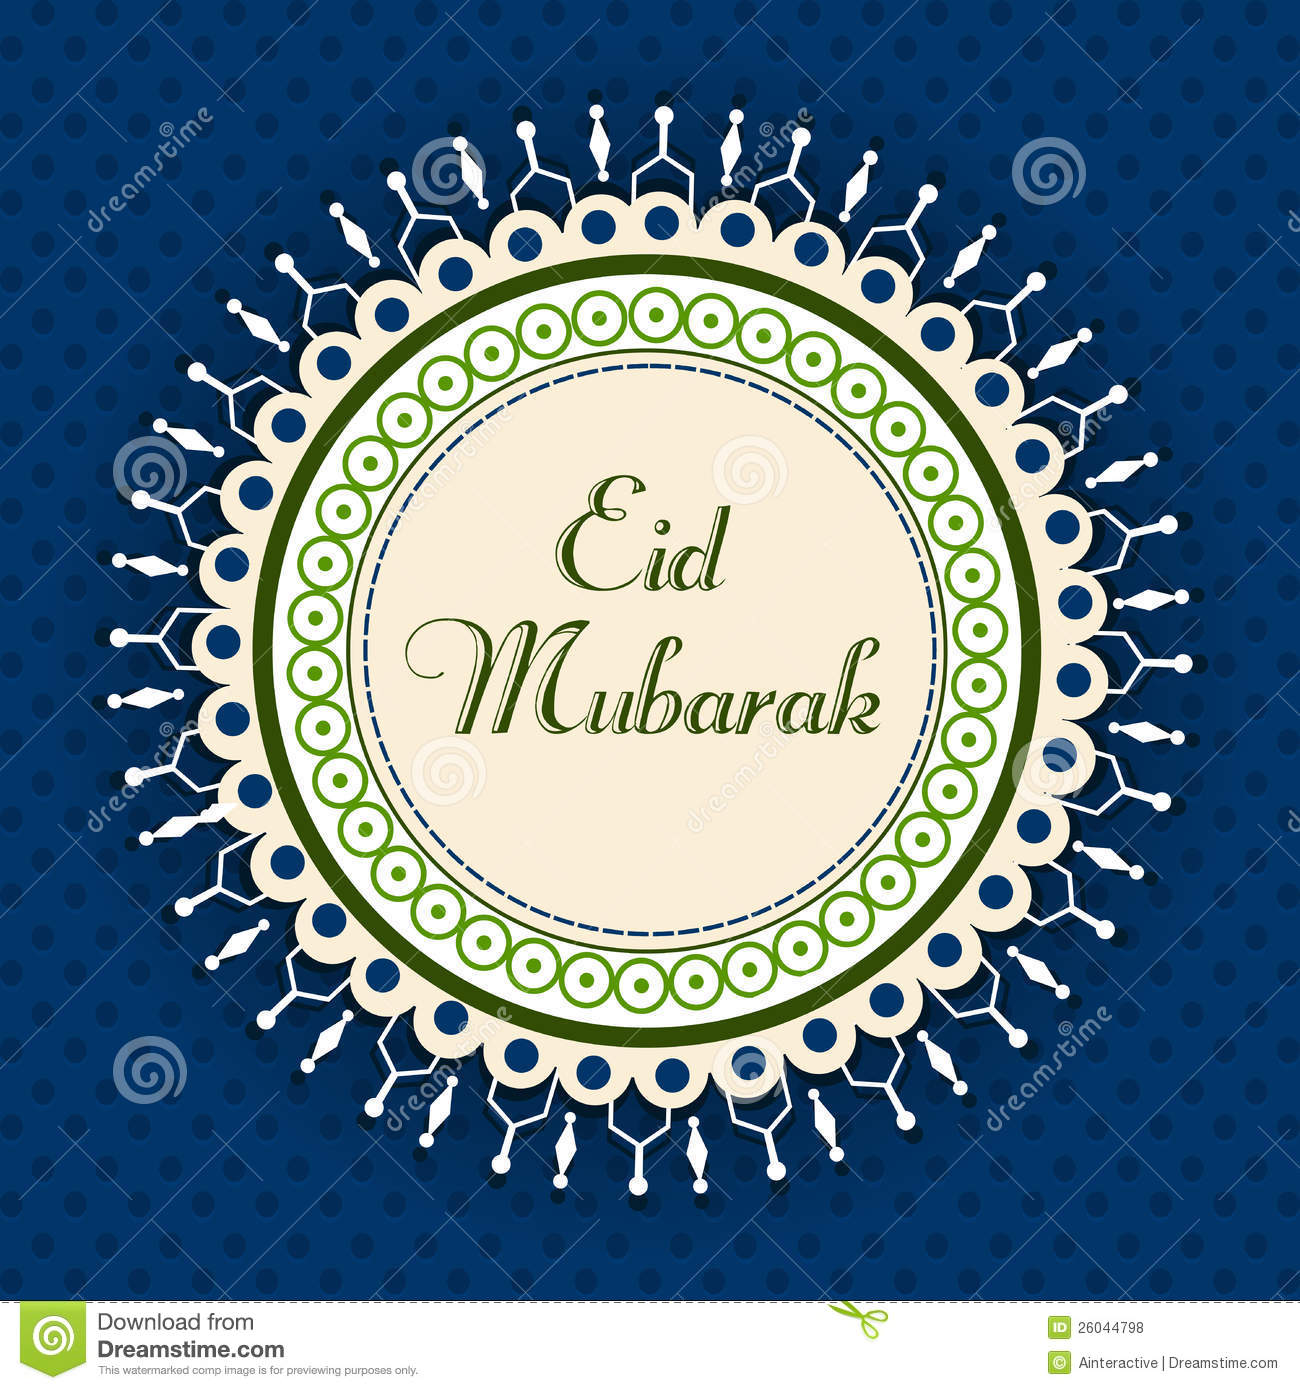 Eid Mubarak Greeting Card Illustration 26044798 Megapixl